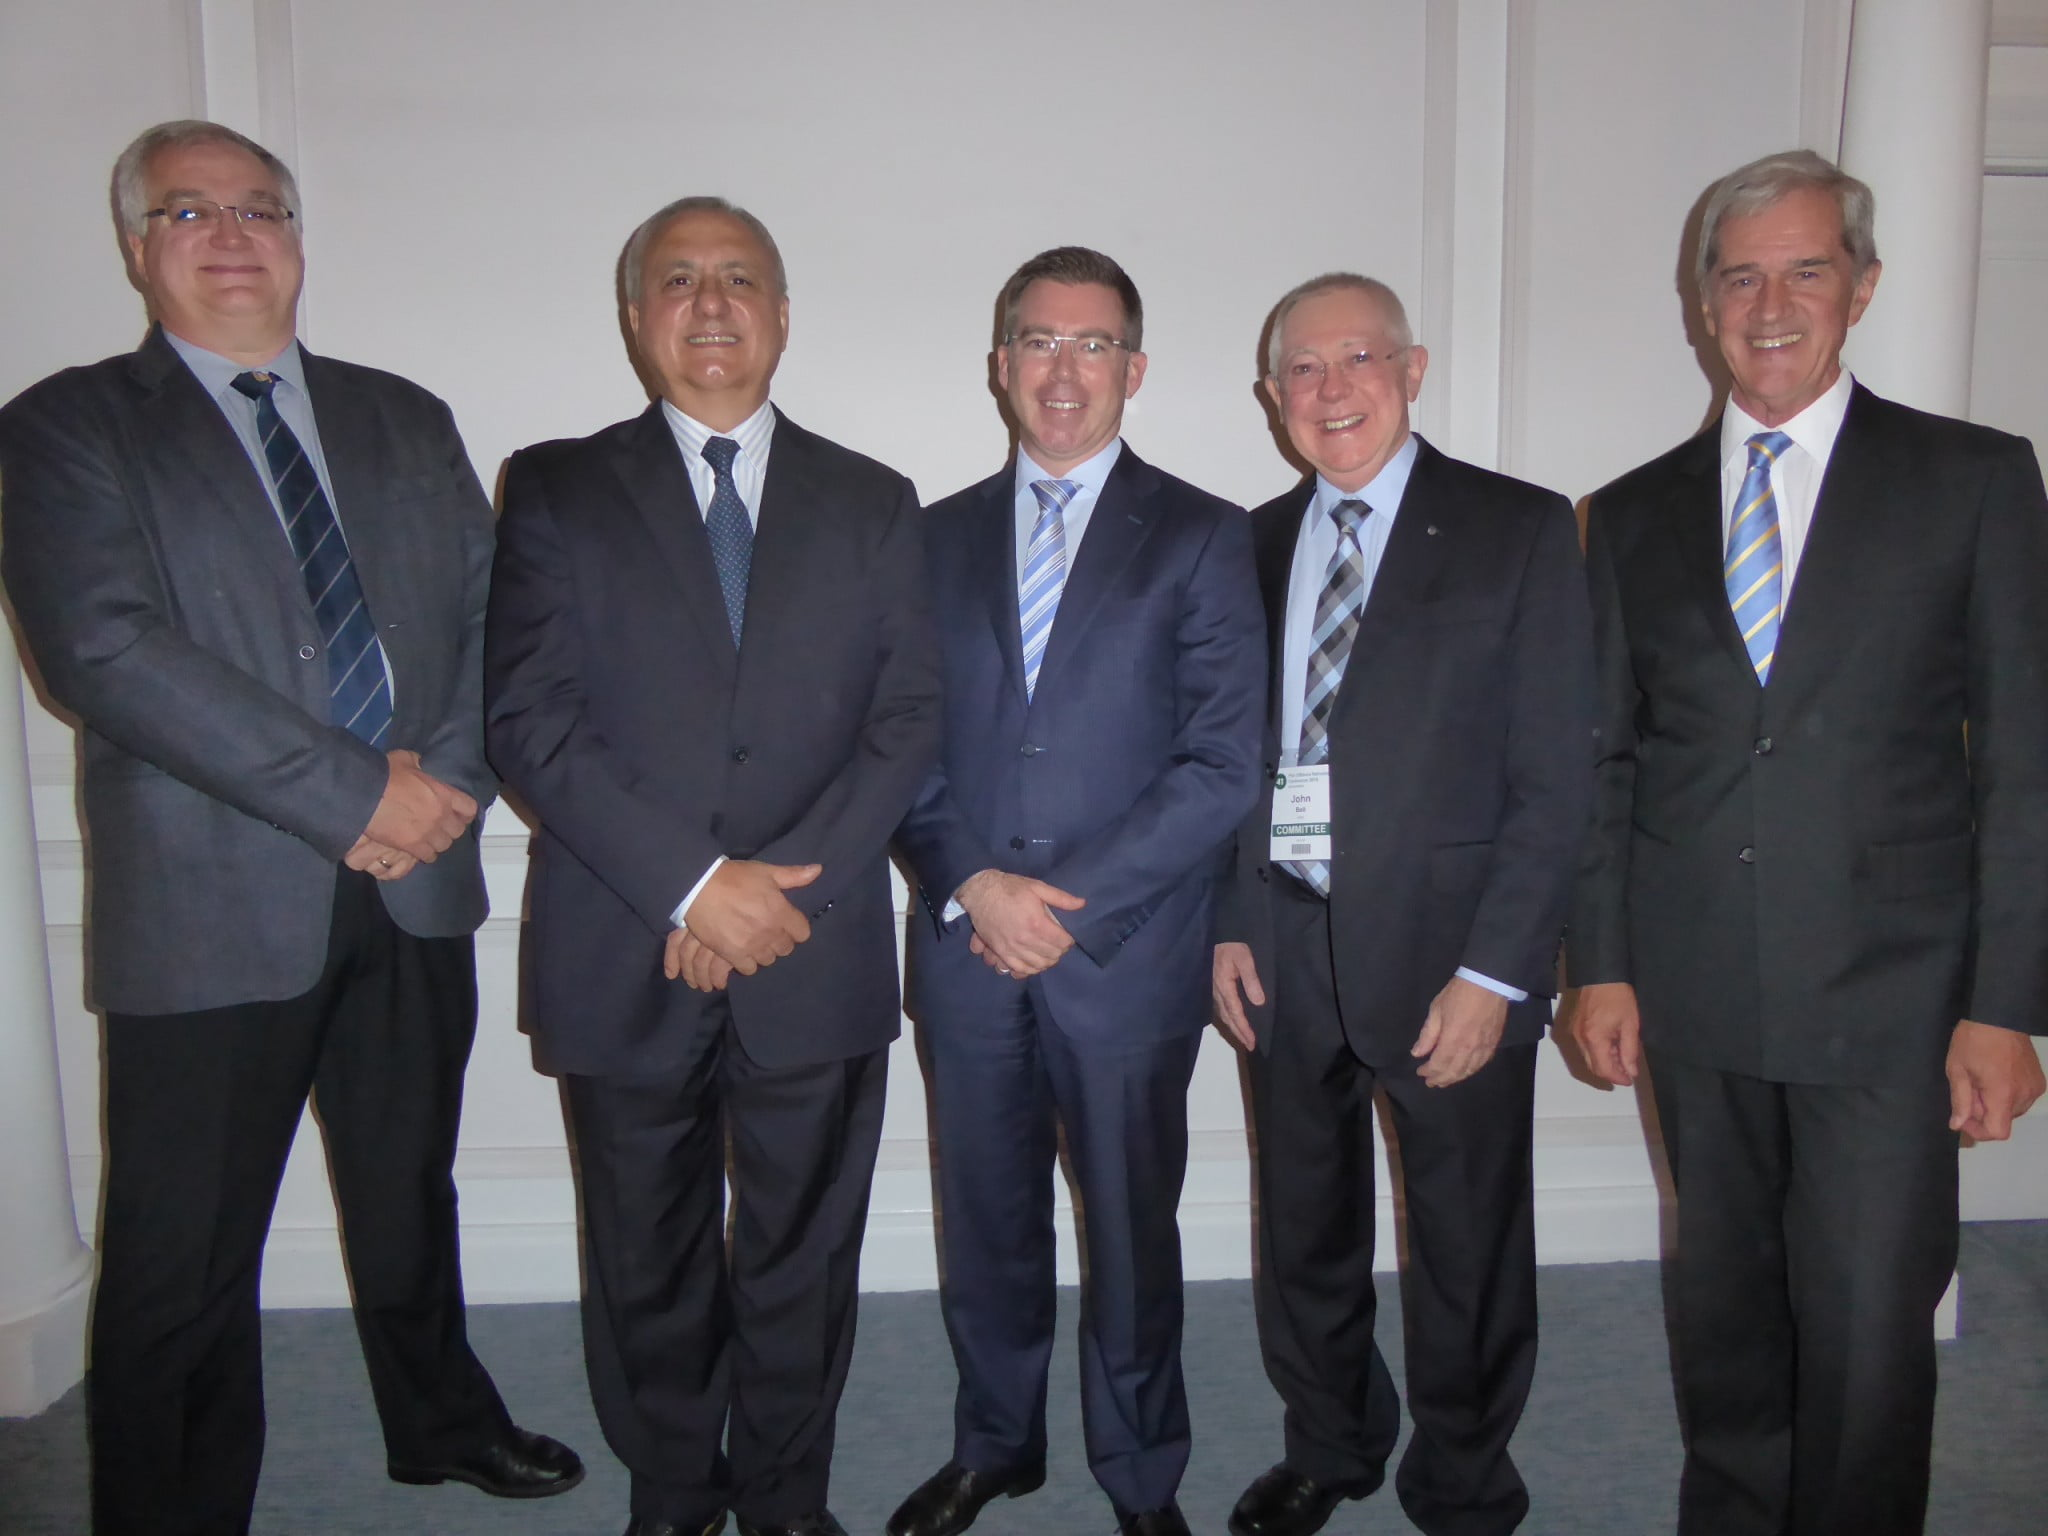 L-R: Prof Sarel Malan, president, Pharmaceutical Society of South Africa; Joe Demarte, president, Pharmaceutical Society of Australia; Ben Playle, Australian Deputy High Commissioner; John Bell, acting conference chair; and Roelf Meyer, formerly chief negotiator for the National Party Government on the settlement of the South African conflict which ended apartheid.